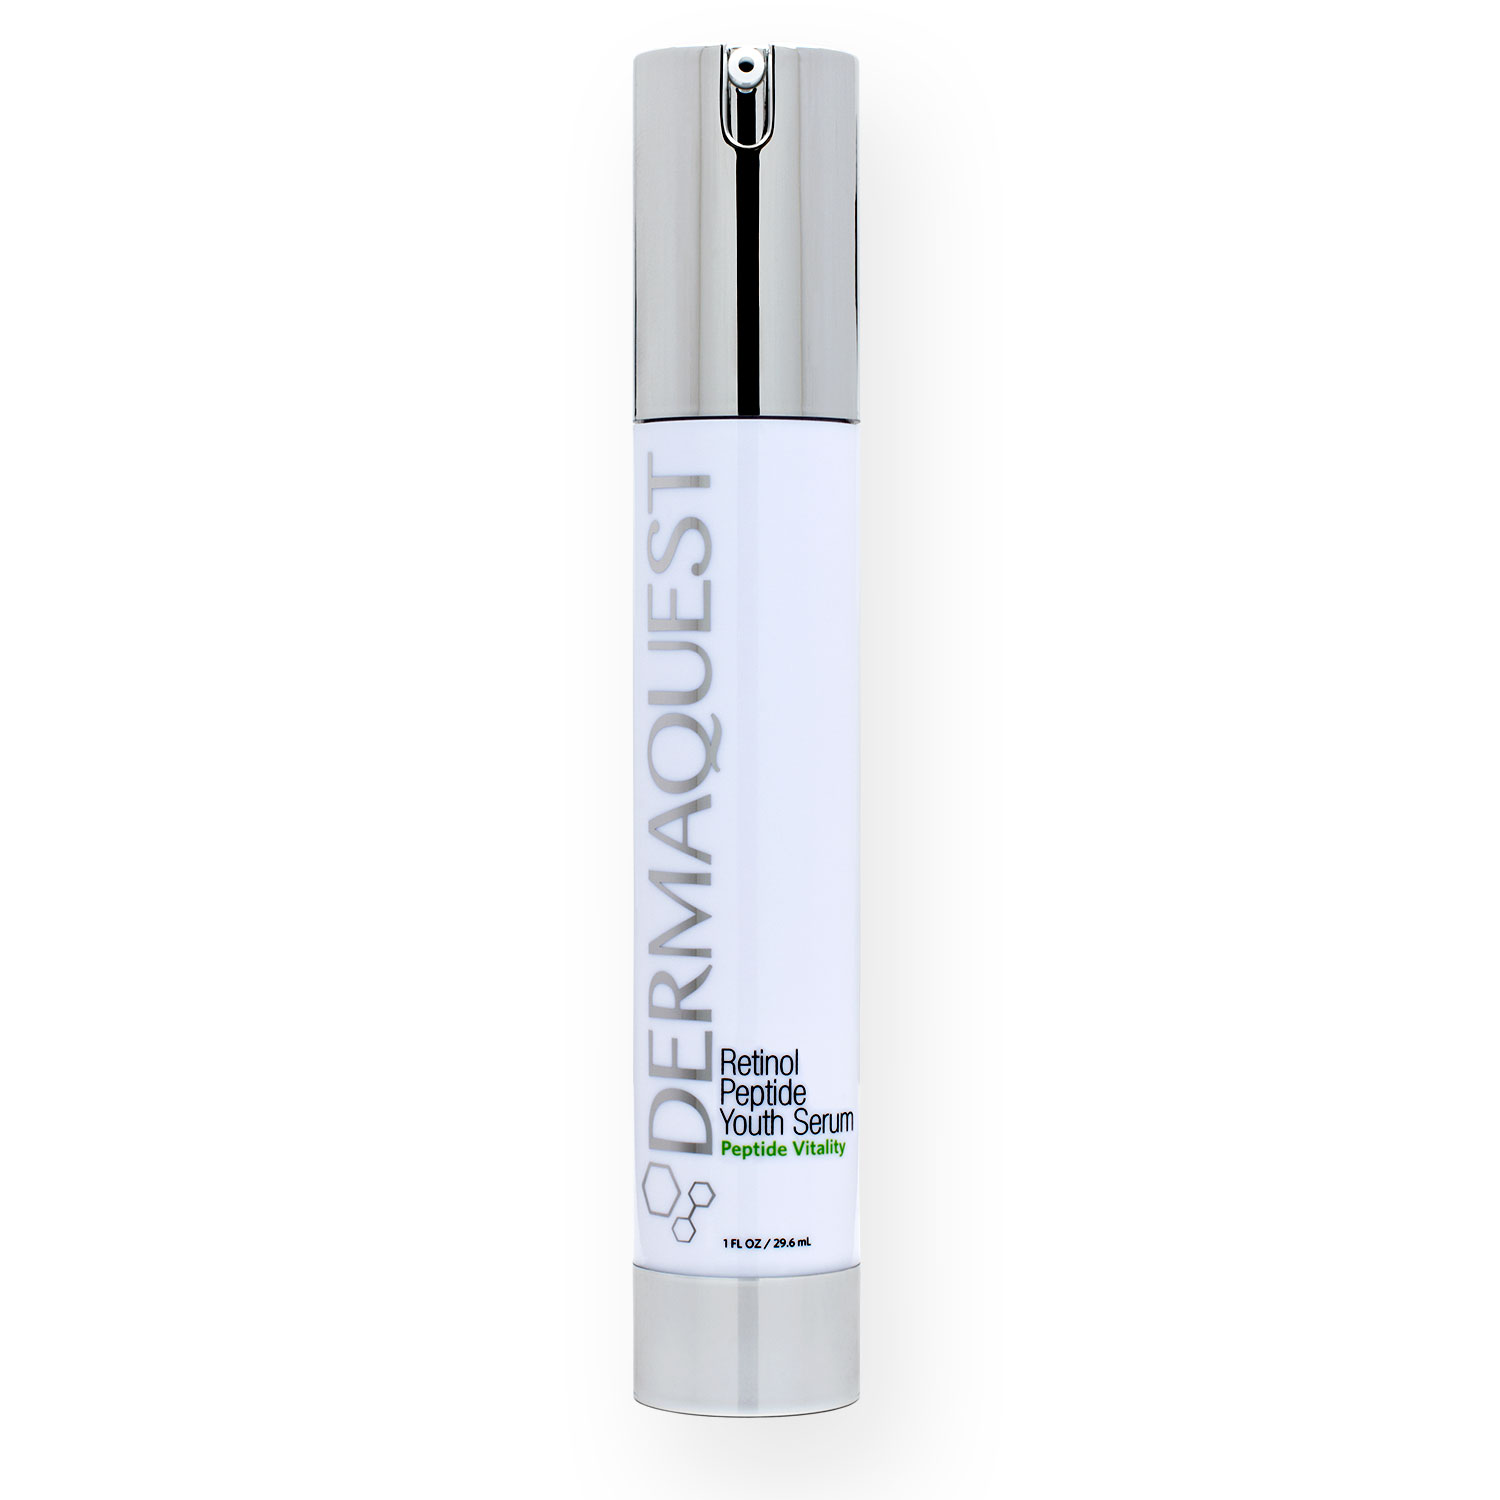 Retinol Peptide Youth Serum – DermaQuest | Professional